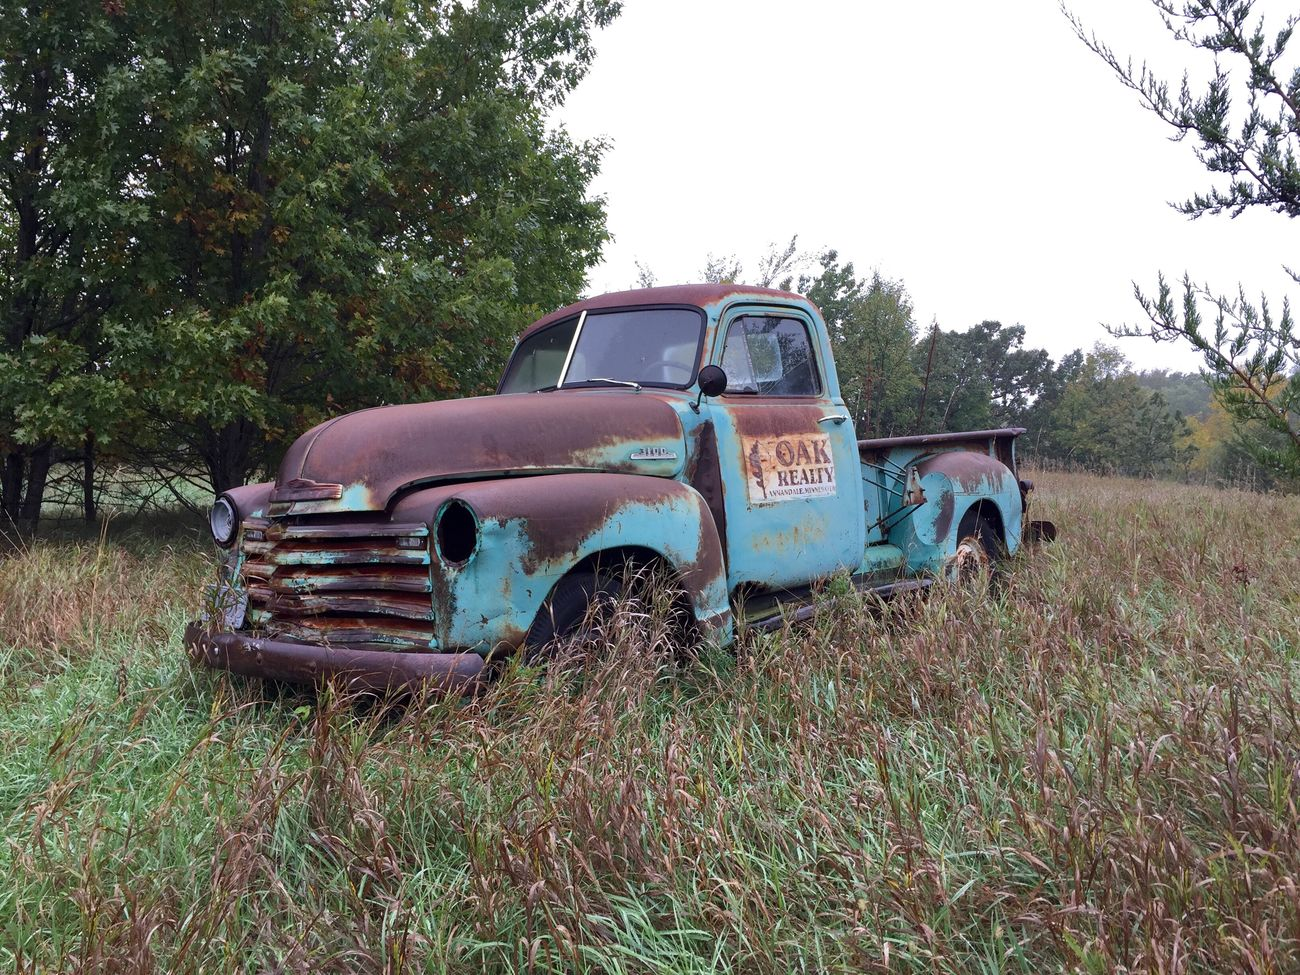 Land Vehicle Transportation Mode Of Transport Car Tree Old Damaged Abandoned Grass Obsolete Rusty Field The Past Green Color Growth Old-fashioned Stationary Plant Day Vehicle Rusty Autos Antique Retro Weathered Outdoors